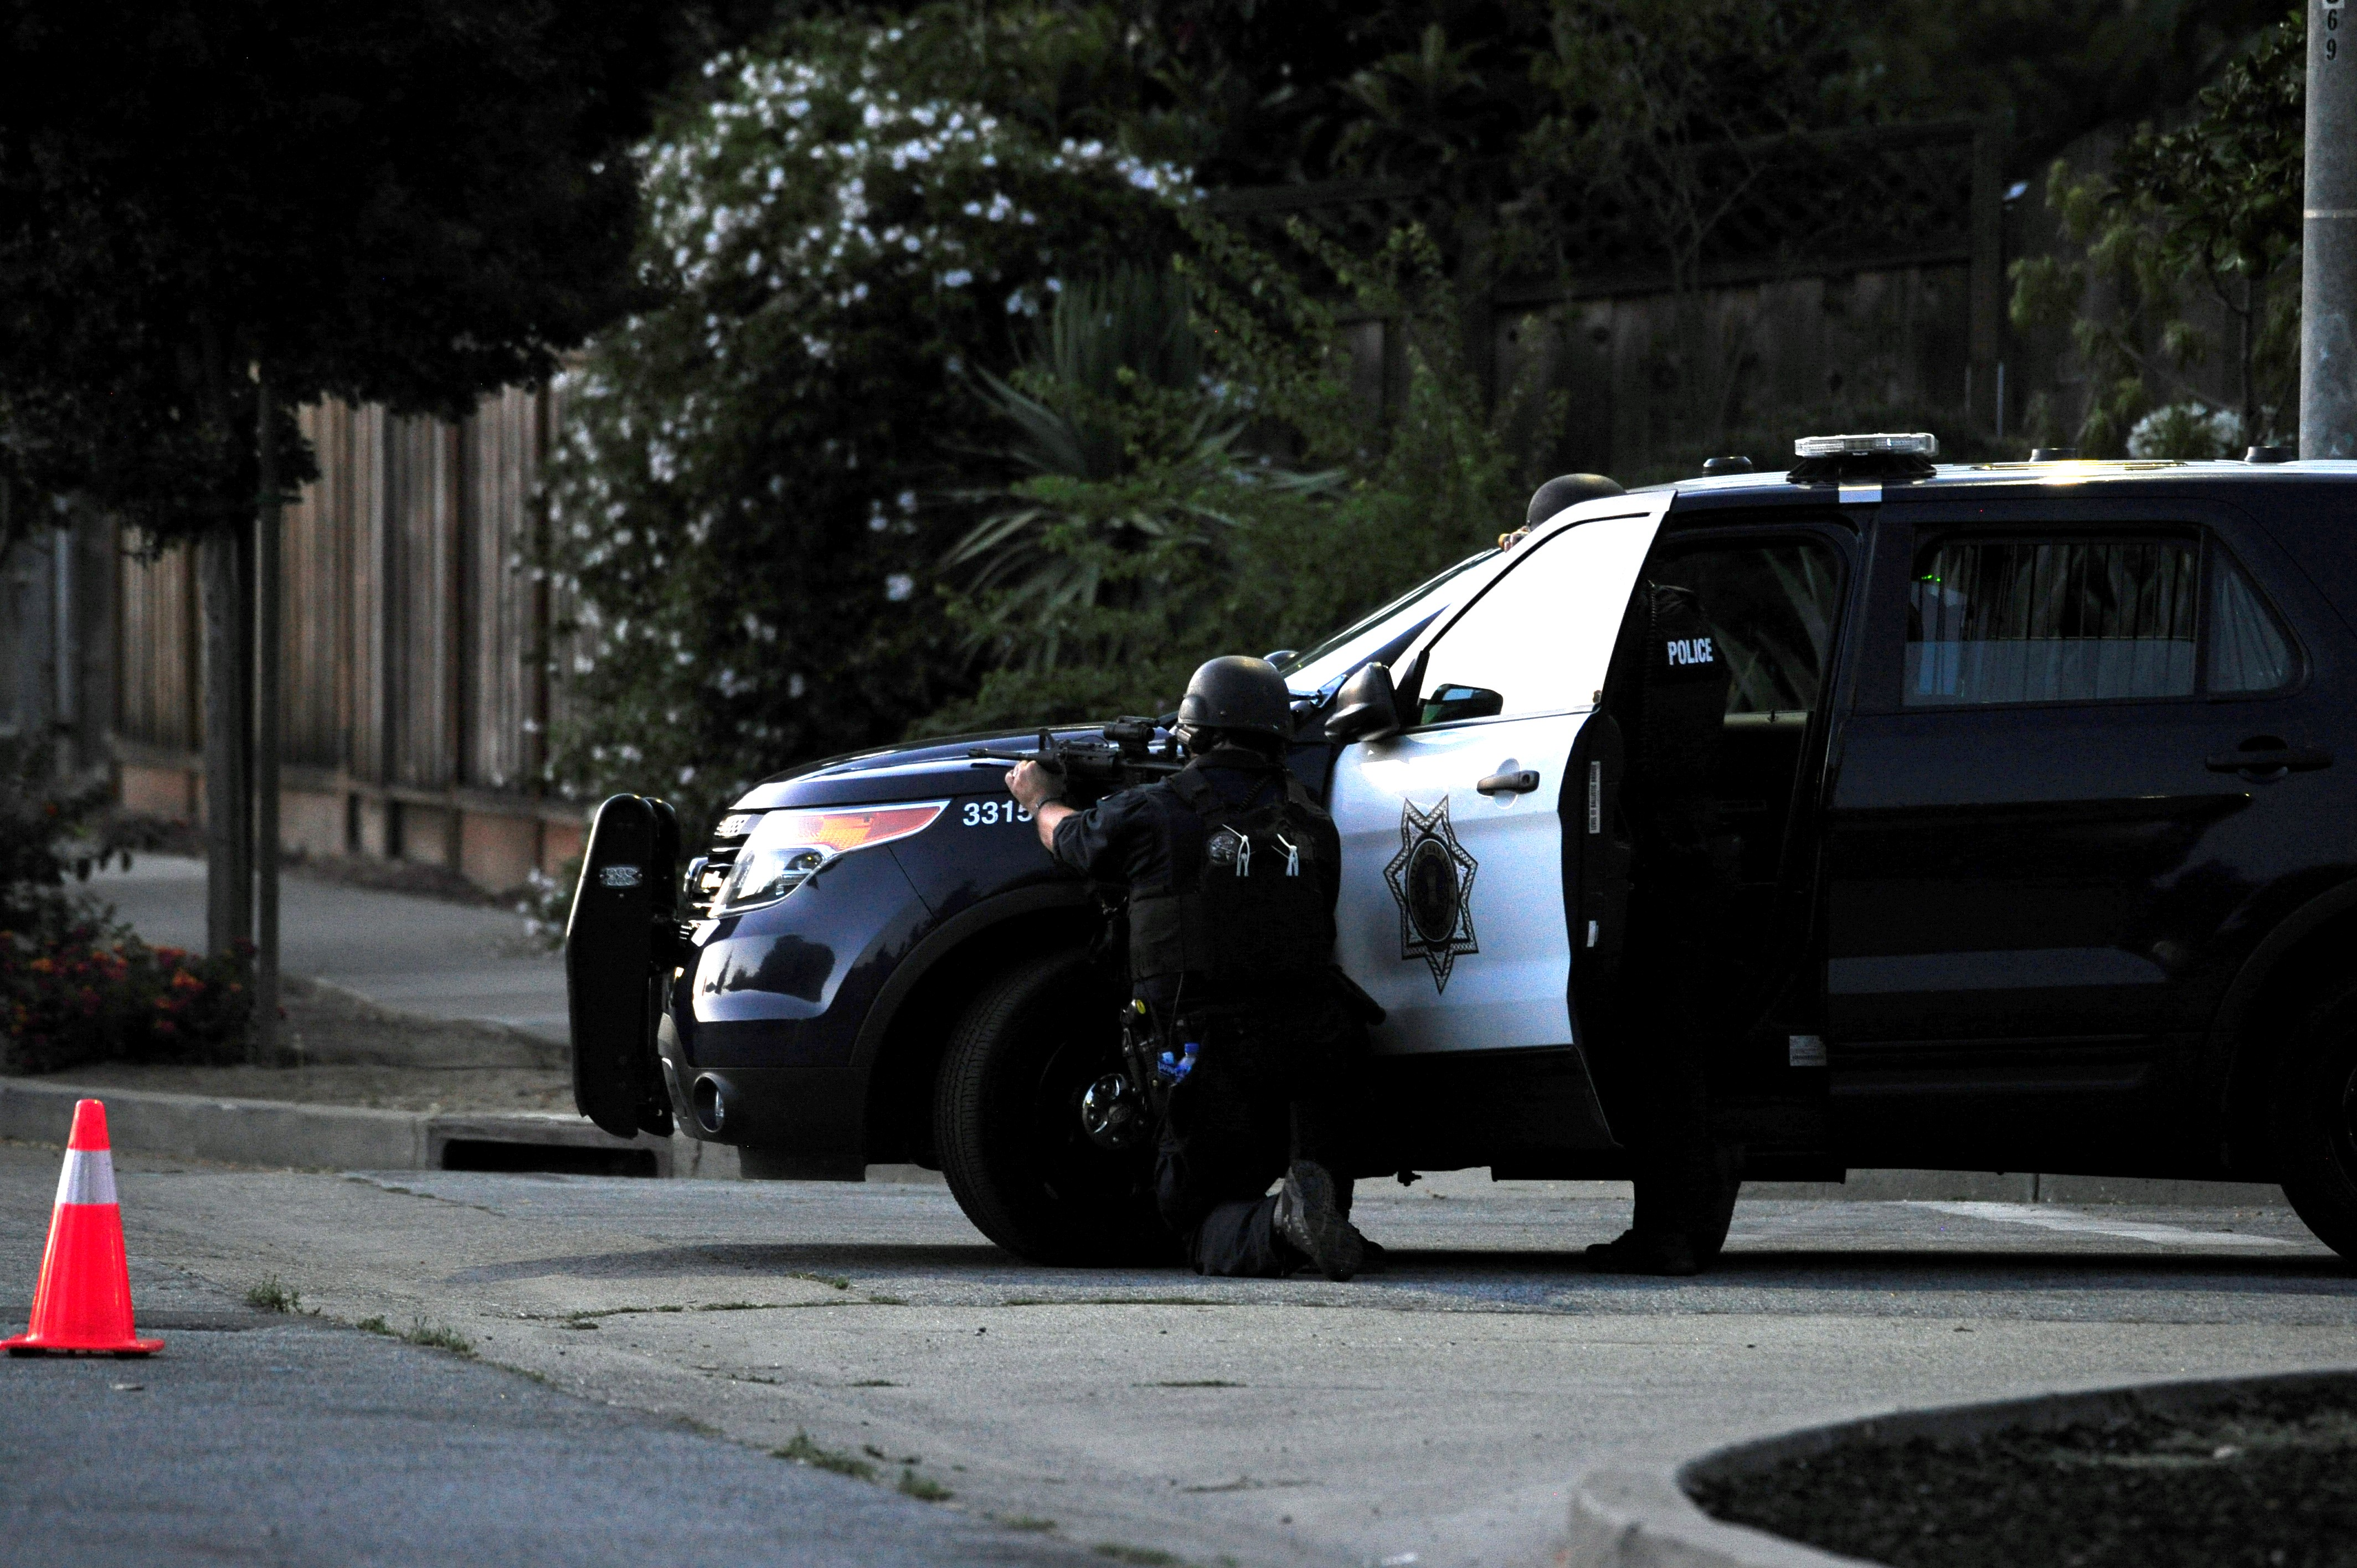 CALIFORNIA, USA - JULY 28 : Sniper takes aim on a house where police thought one of the shooters from mass shooting at the Gilroy Garlic festival might have been in Gilroy, California on July 28, 2019. At least three people were killed on Sunday in an ongoing shooting at a festival in northern California, according to a local official.   (Photo by Neal Waters/Anadolu Agency via Getty Images)